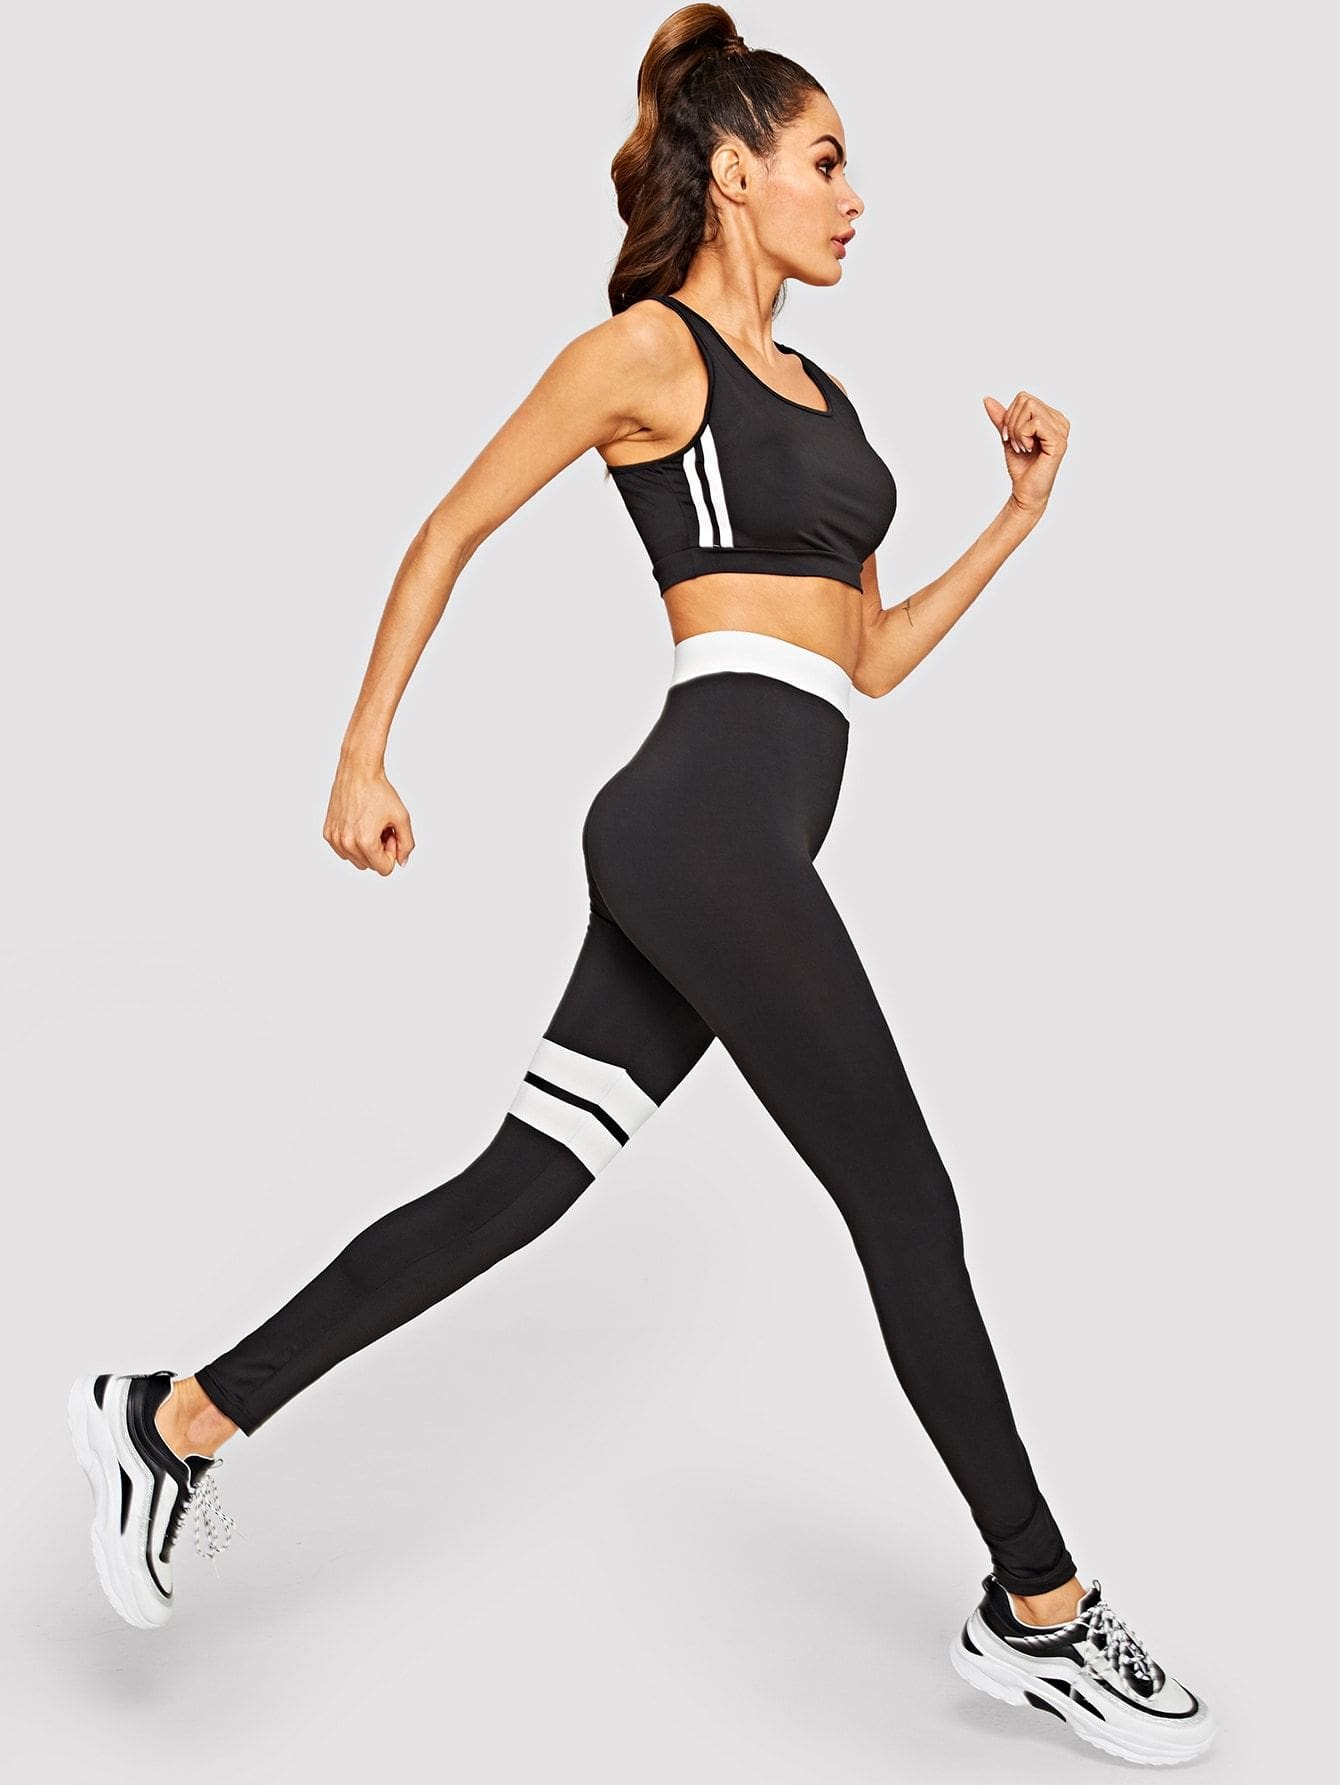 Color Block Sport Bra & Leggings Set - S - Sportsuit